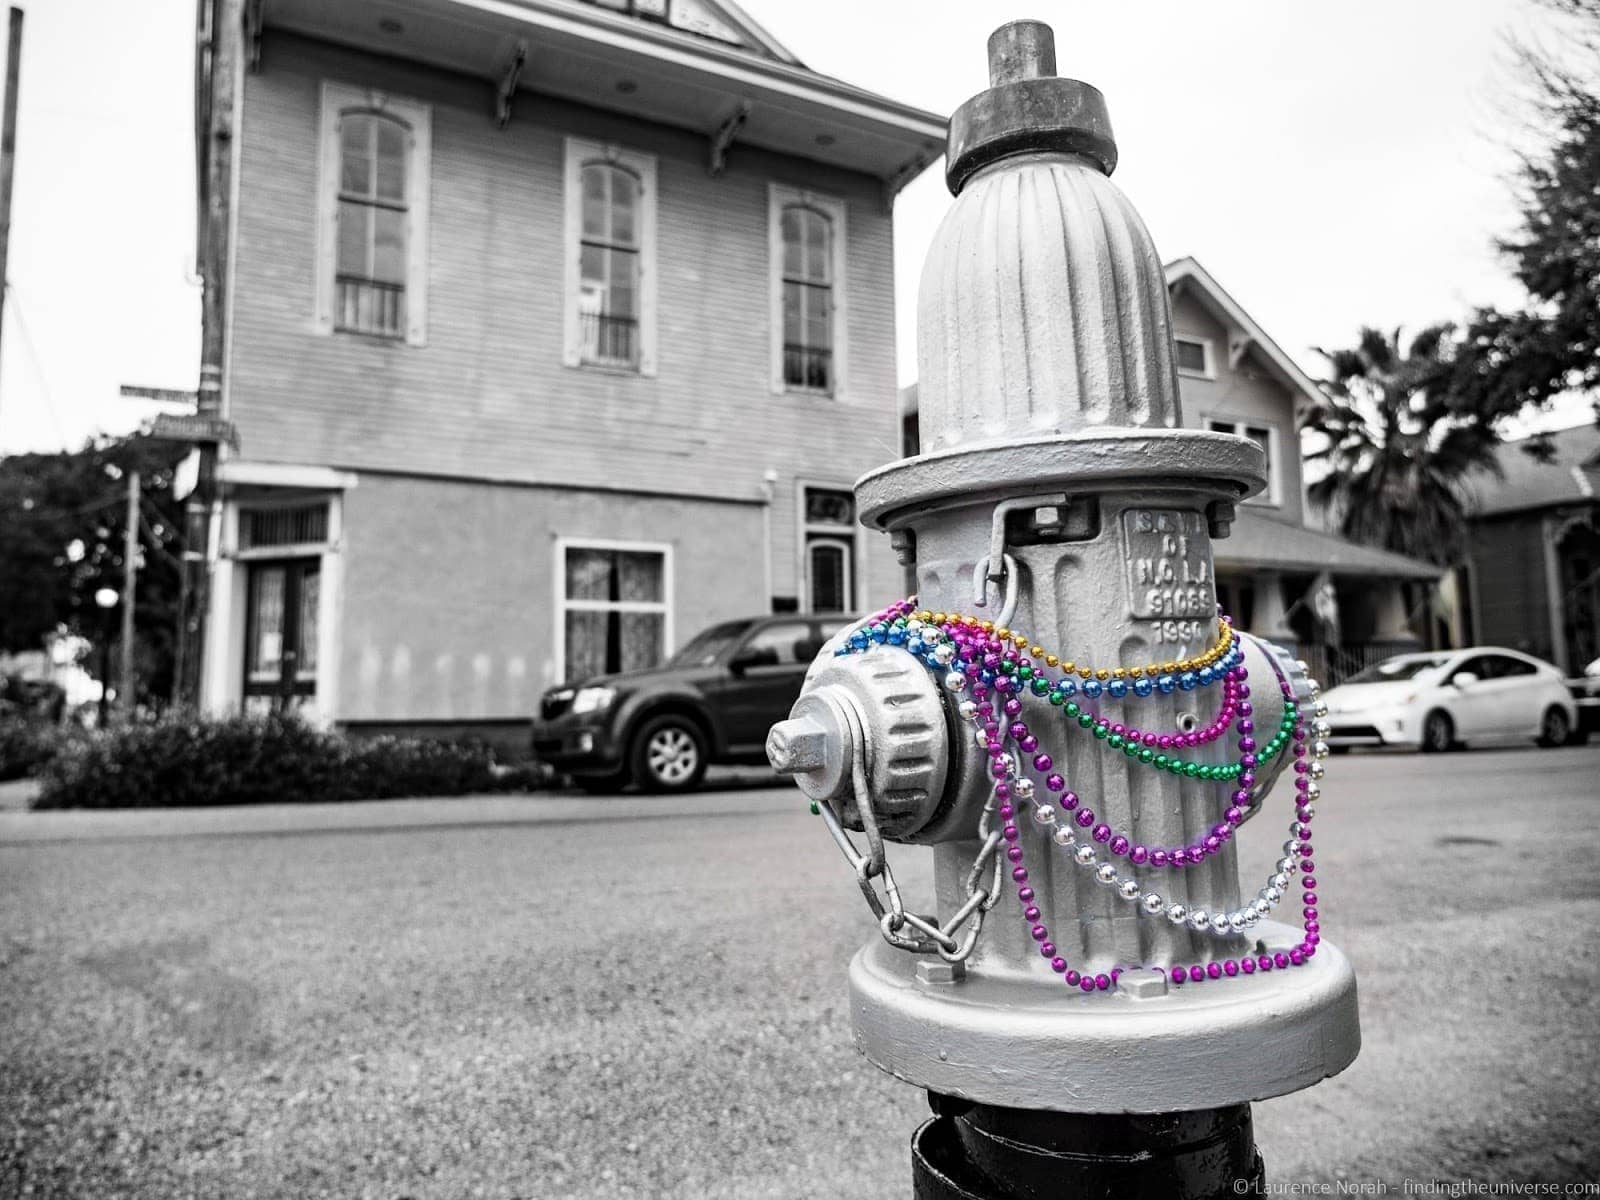 Best Restaurants In New Orleans 2020 Mardi Gras 2020 in New Orleans   A Full Guide   Finding the Universe